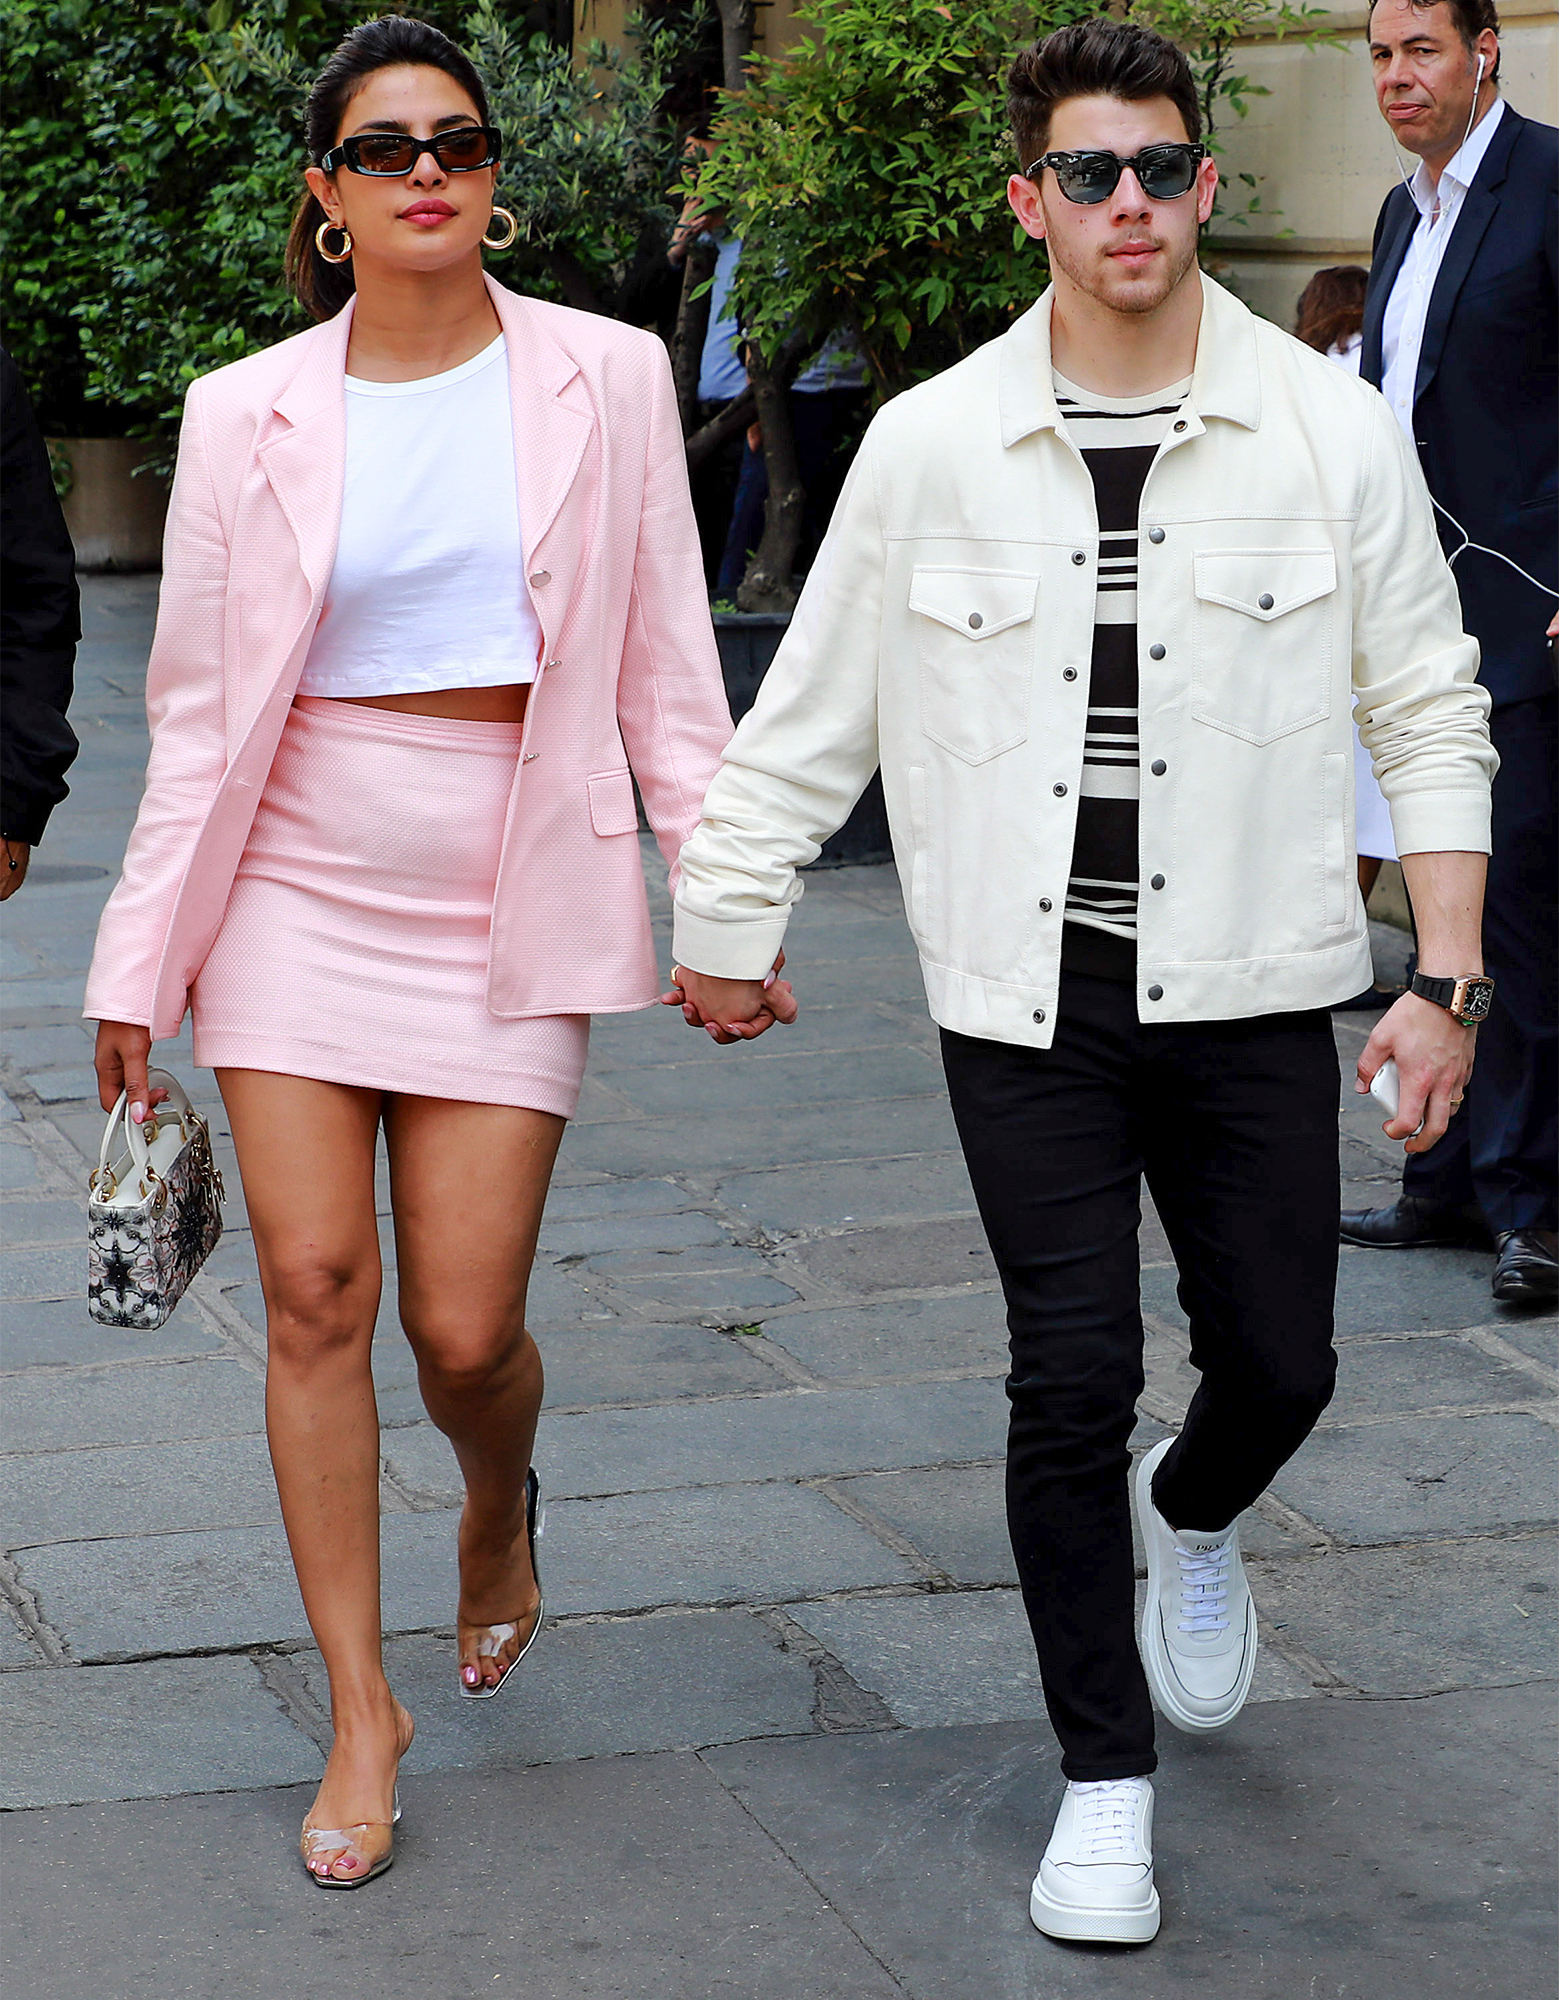 Prianka Chopra and Nick Jonas